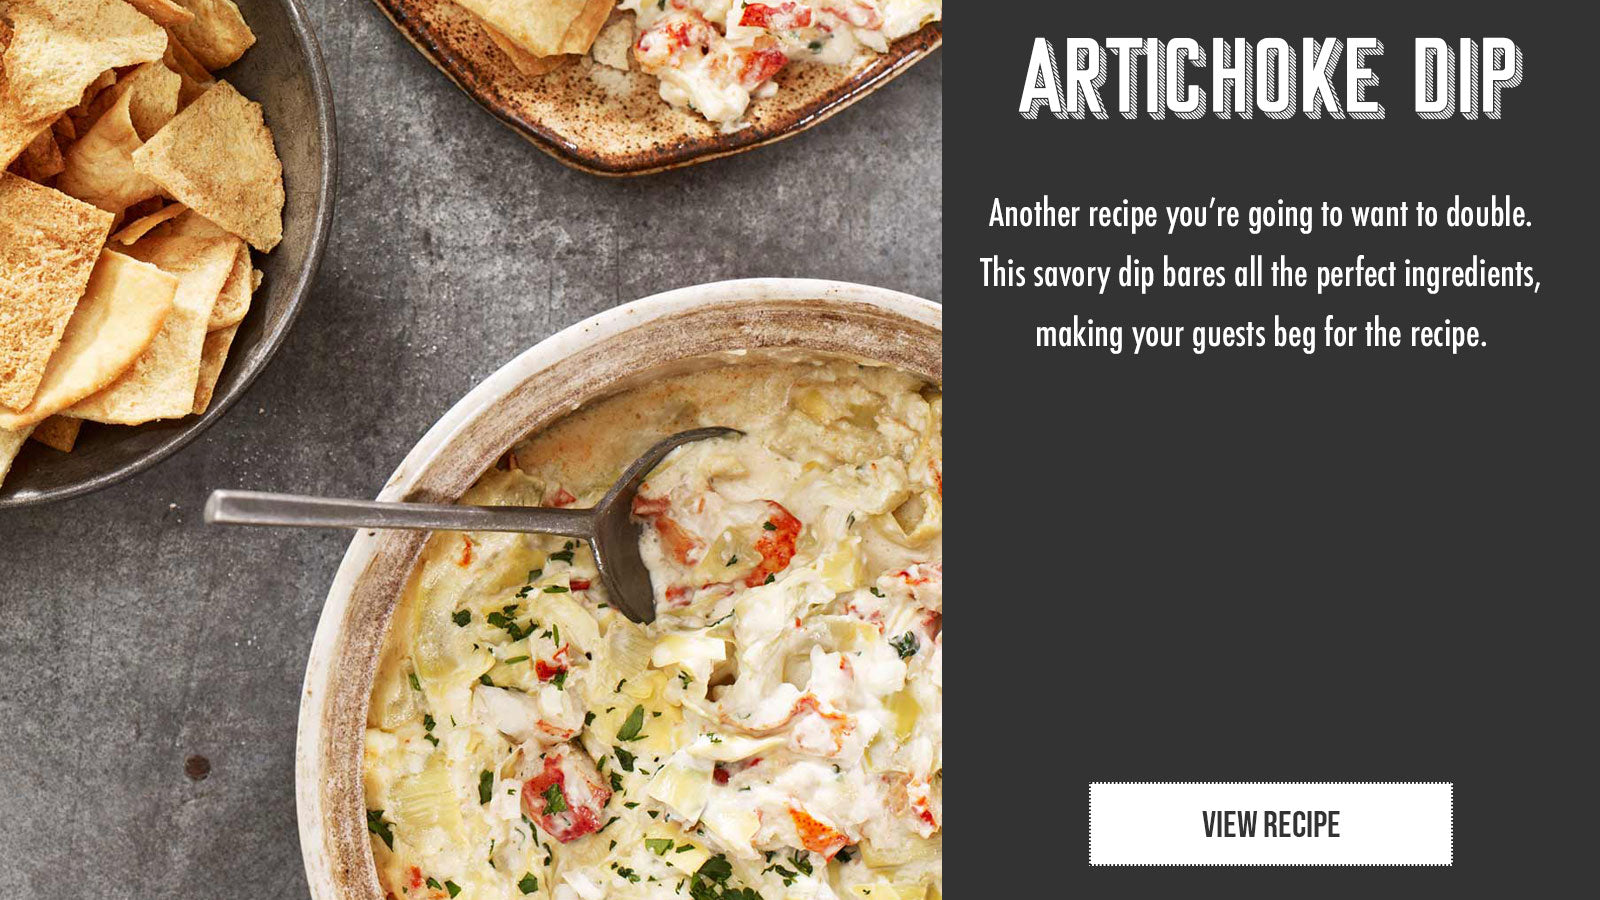 Maine lobster artichoke dip